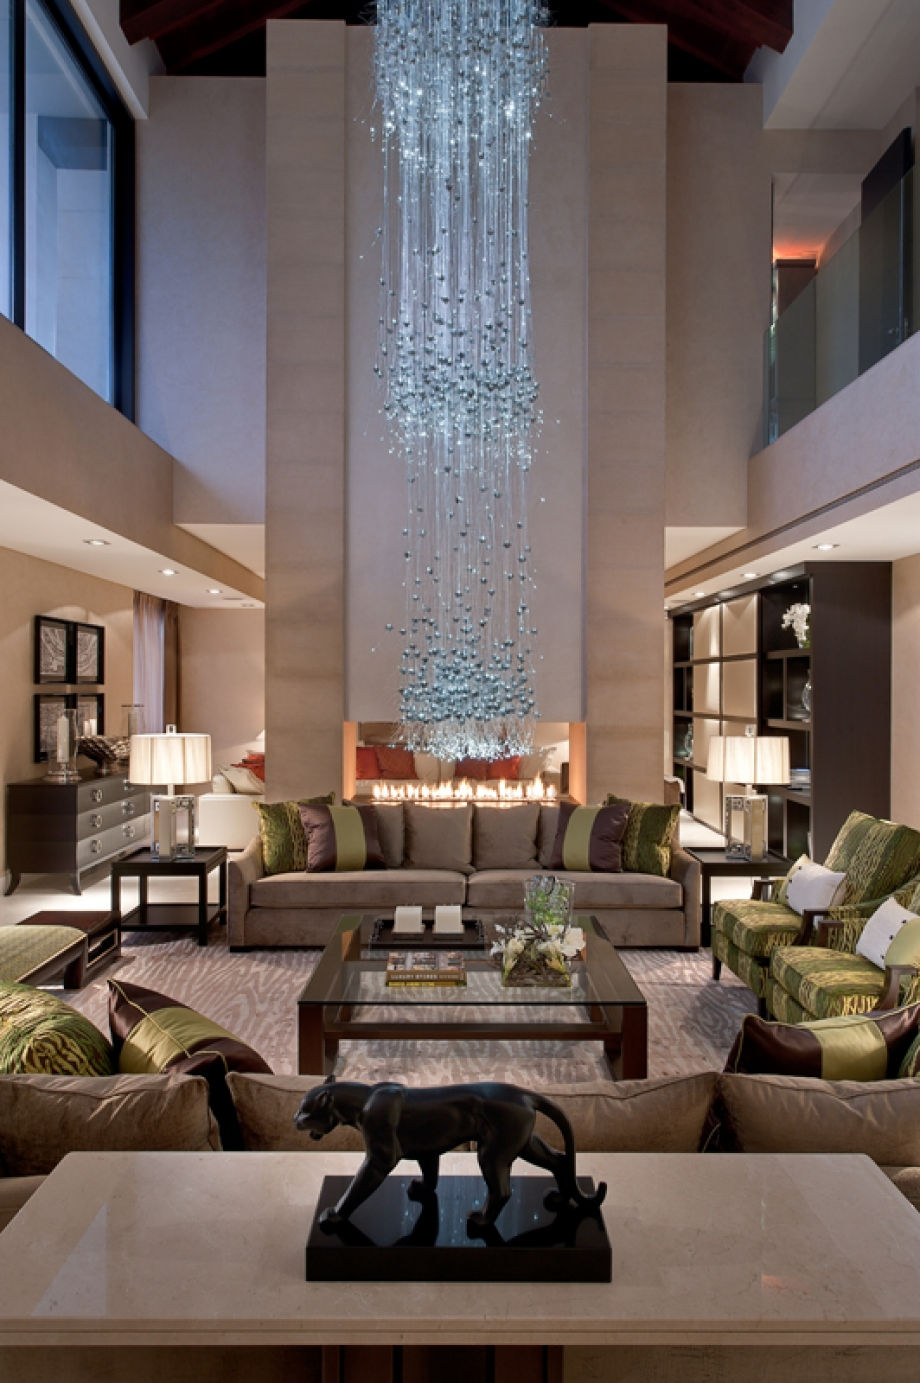 Luxury Homes Interior Design Photos: Luxury Chandeliers For Living Room